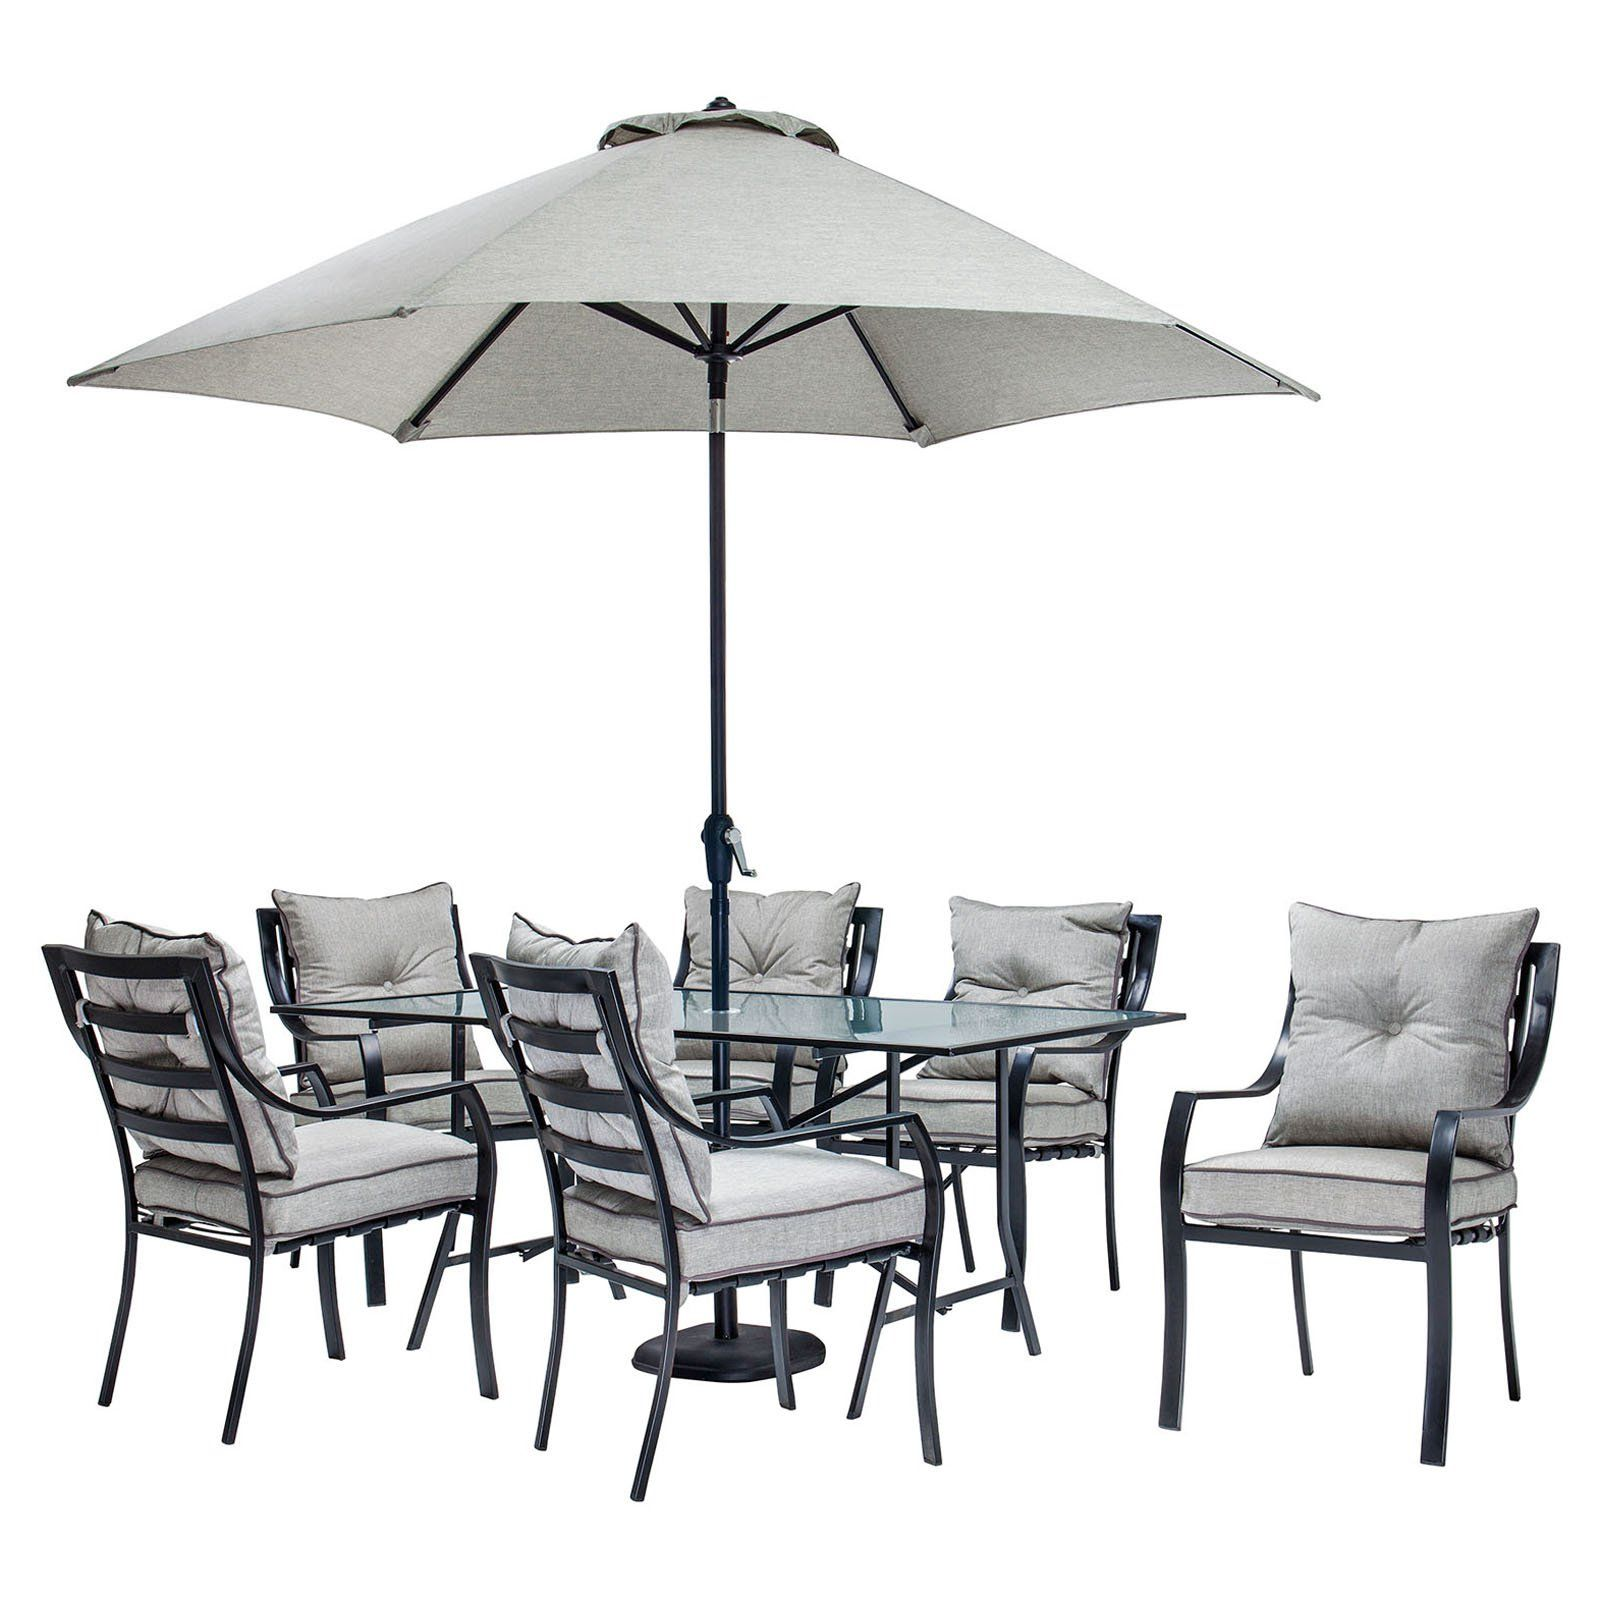 Hanover Lavallette Steel 7 Piece Rectangular Patio Dining Set With